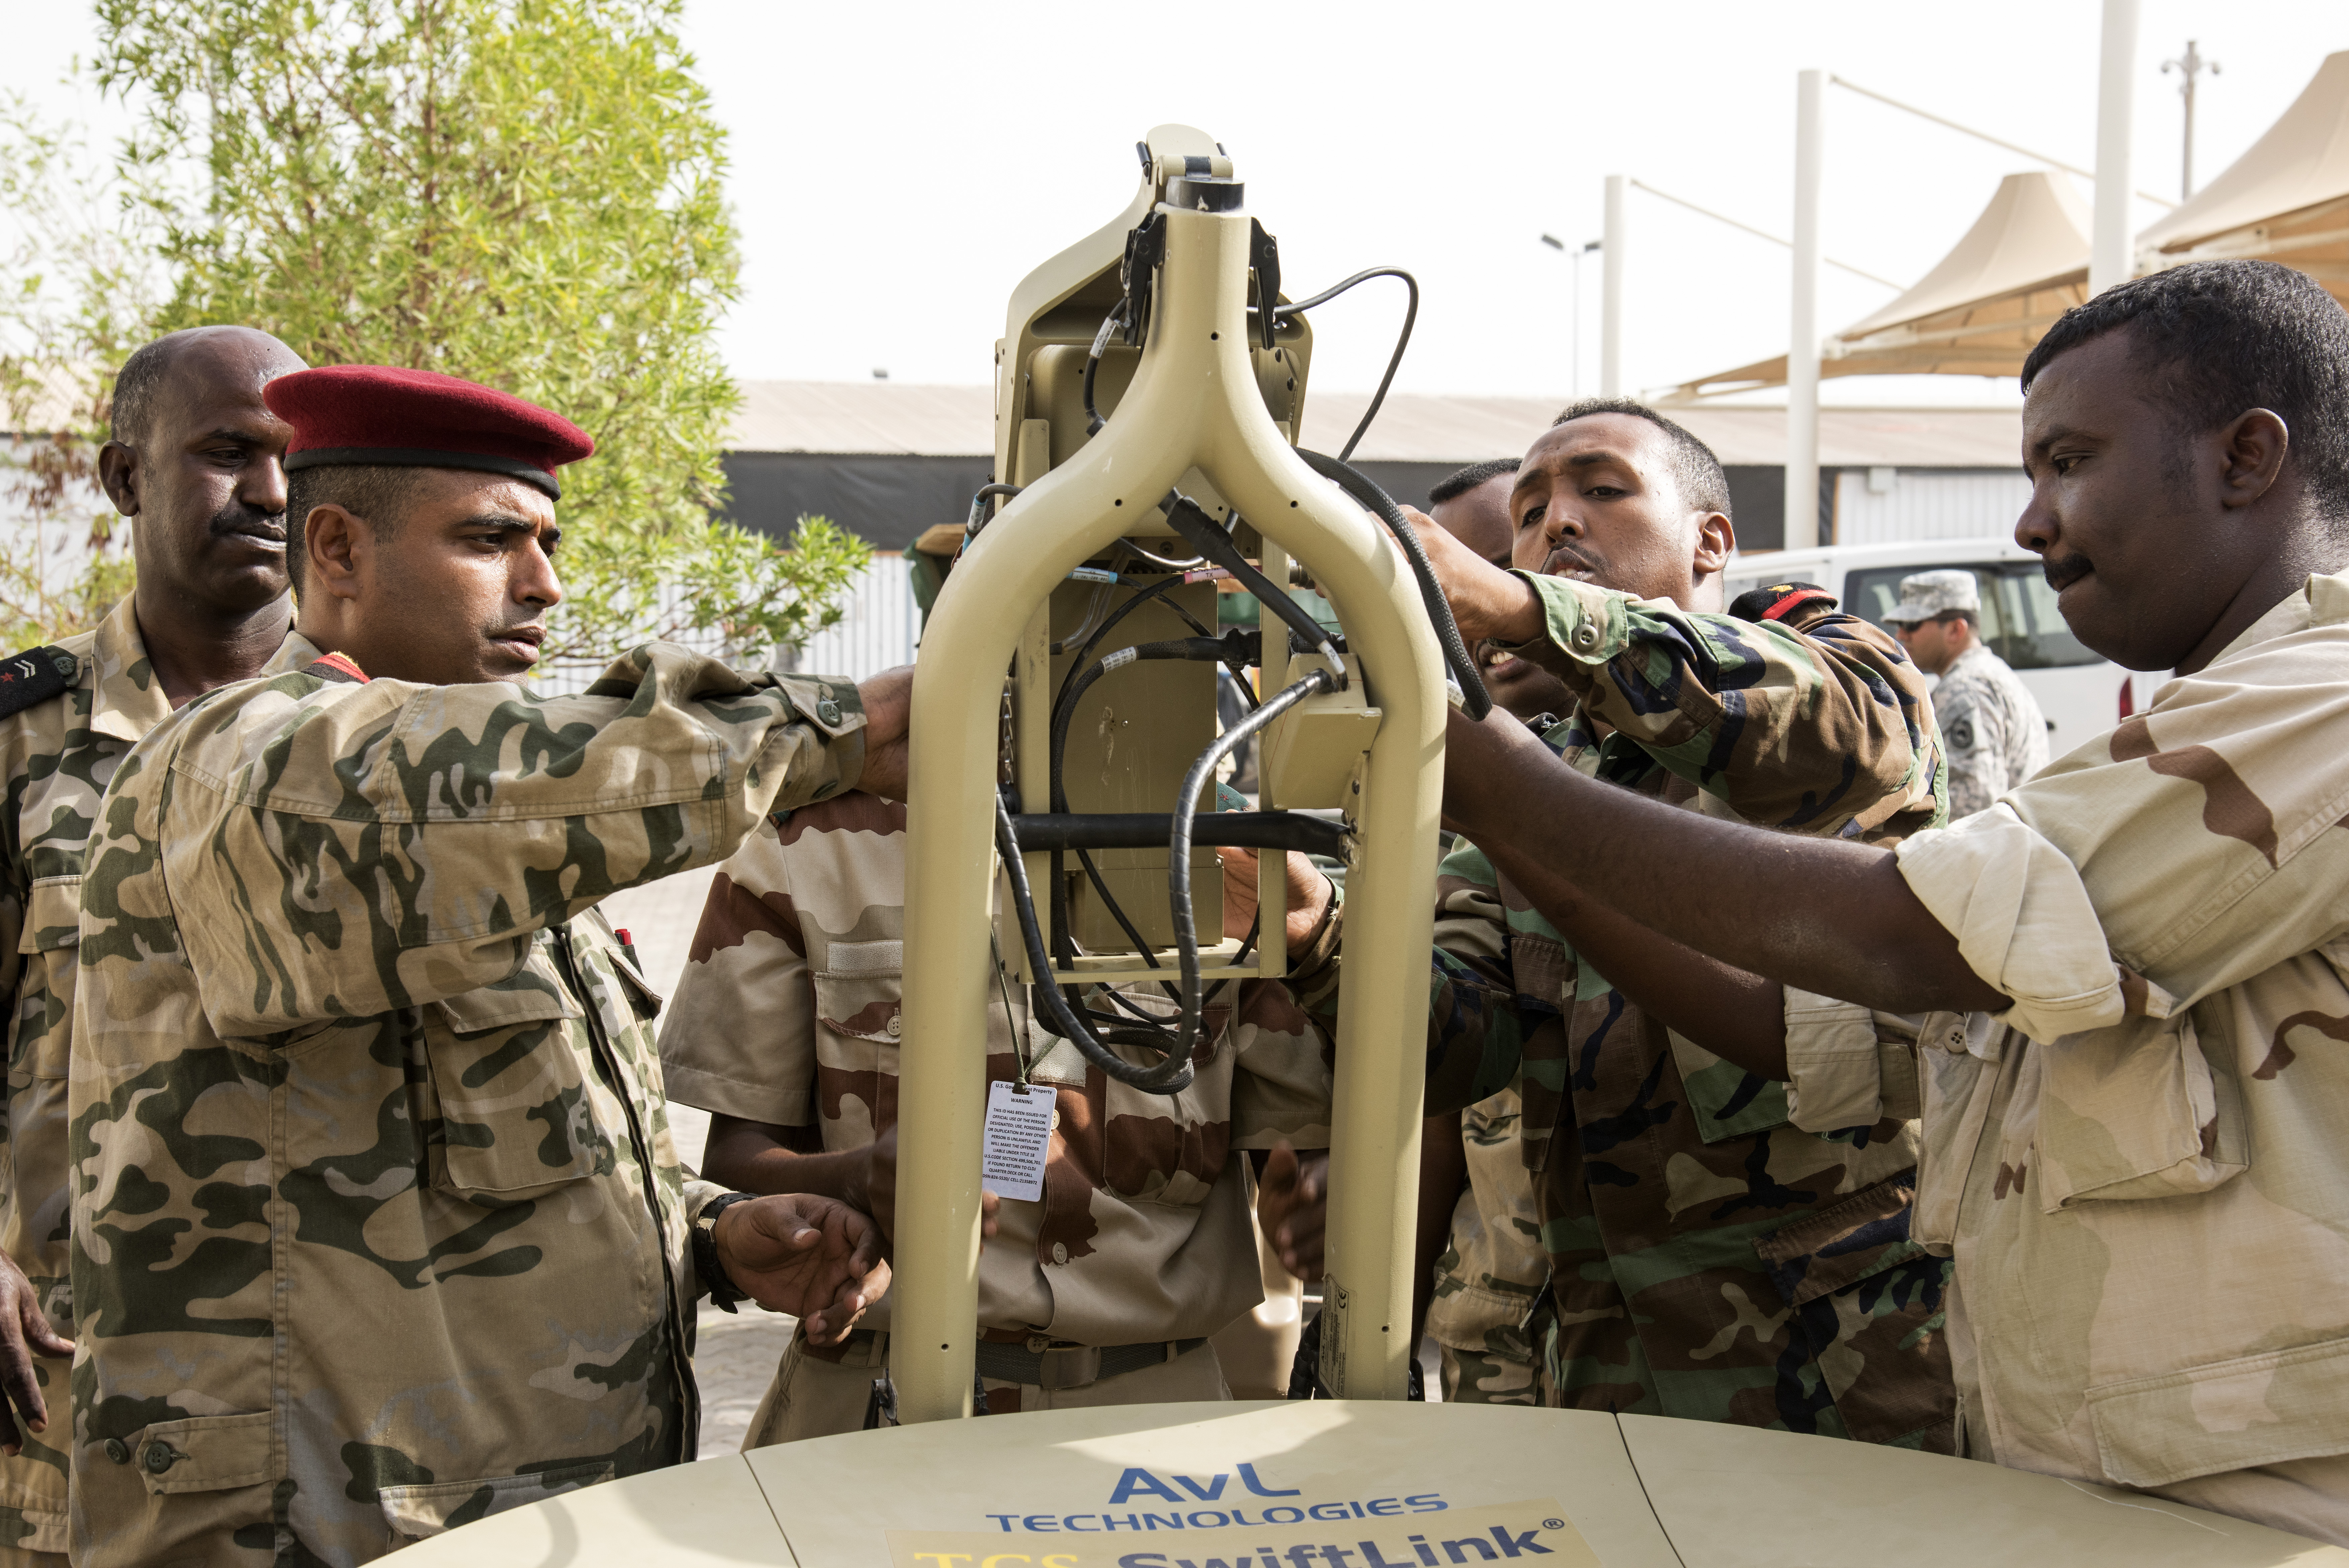 Members of the Djibouti Armed Forces (FAD) assemble the feed horn of a U.S. Africa Command Data Sharing Network (ADSN) terminal at Camp Lemonnier, Djibouti, Aug. 31, 2015. The feed horn is used to transmit a signal by using the dish to focus the signal into a narrow stream and to receive transmissions reflected by the dish. The setup and tear down of the ADSN field communication system was part of a multi-week course, which was hosted by Combined Joint Task Force-Horn of Africa communications and intelligence personnel, and was designed to broaden communication interoperability between host nation security forces. (U.S. Air Force photo by Staff Sgt. Nathan Maysonet/released)